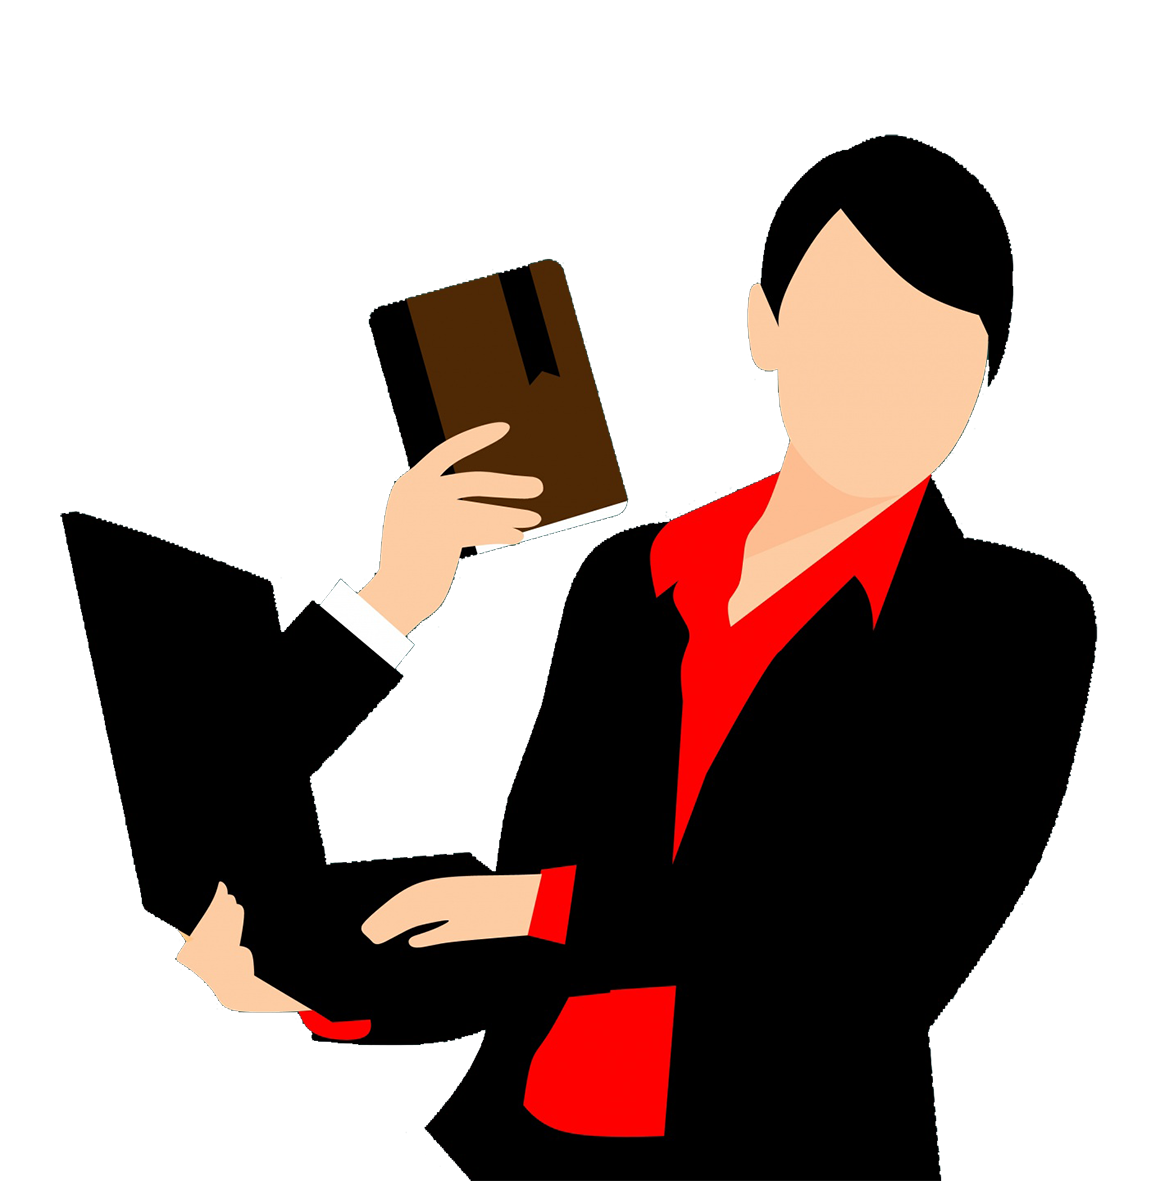 clipart book or online reading